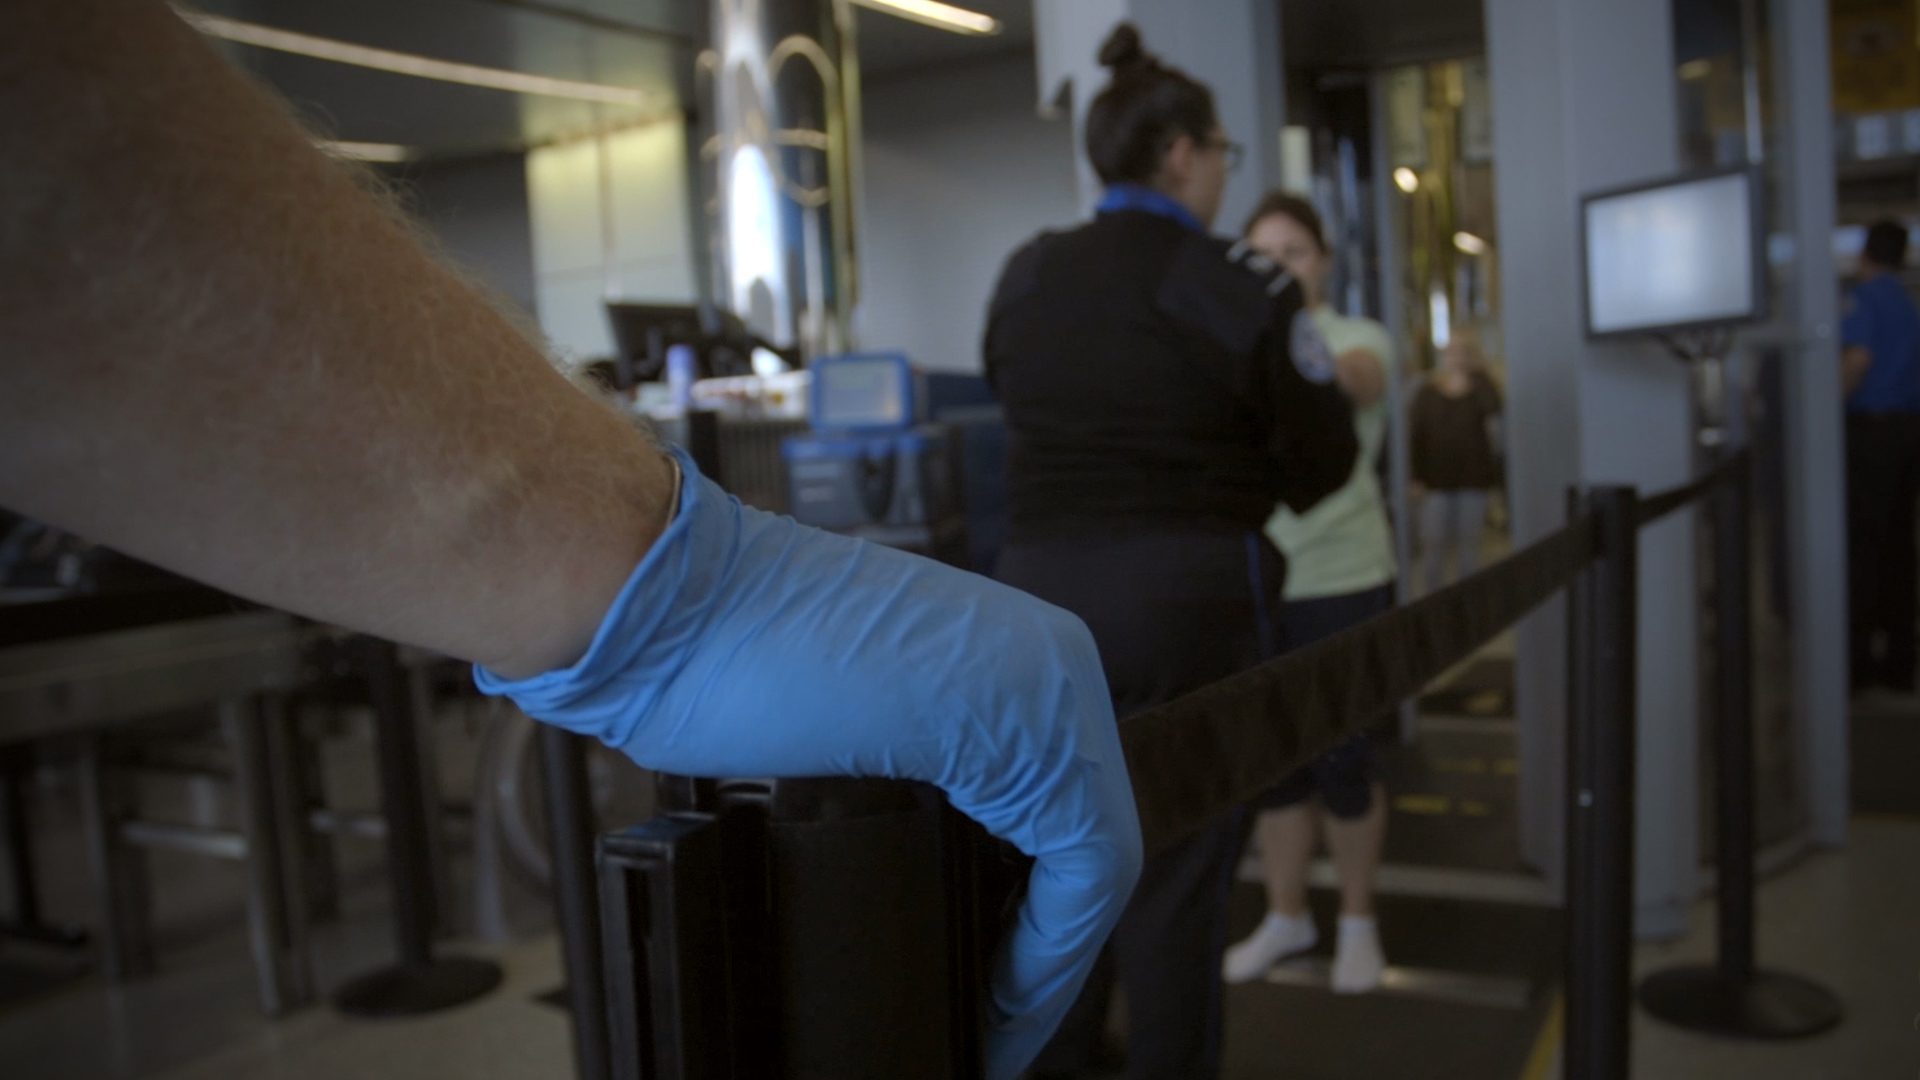 Here's what happens if the TSA catches you with marijuana at